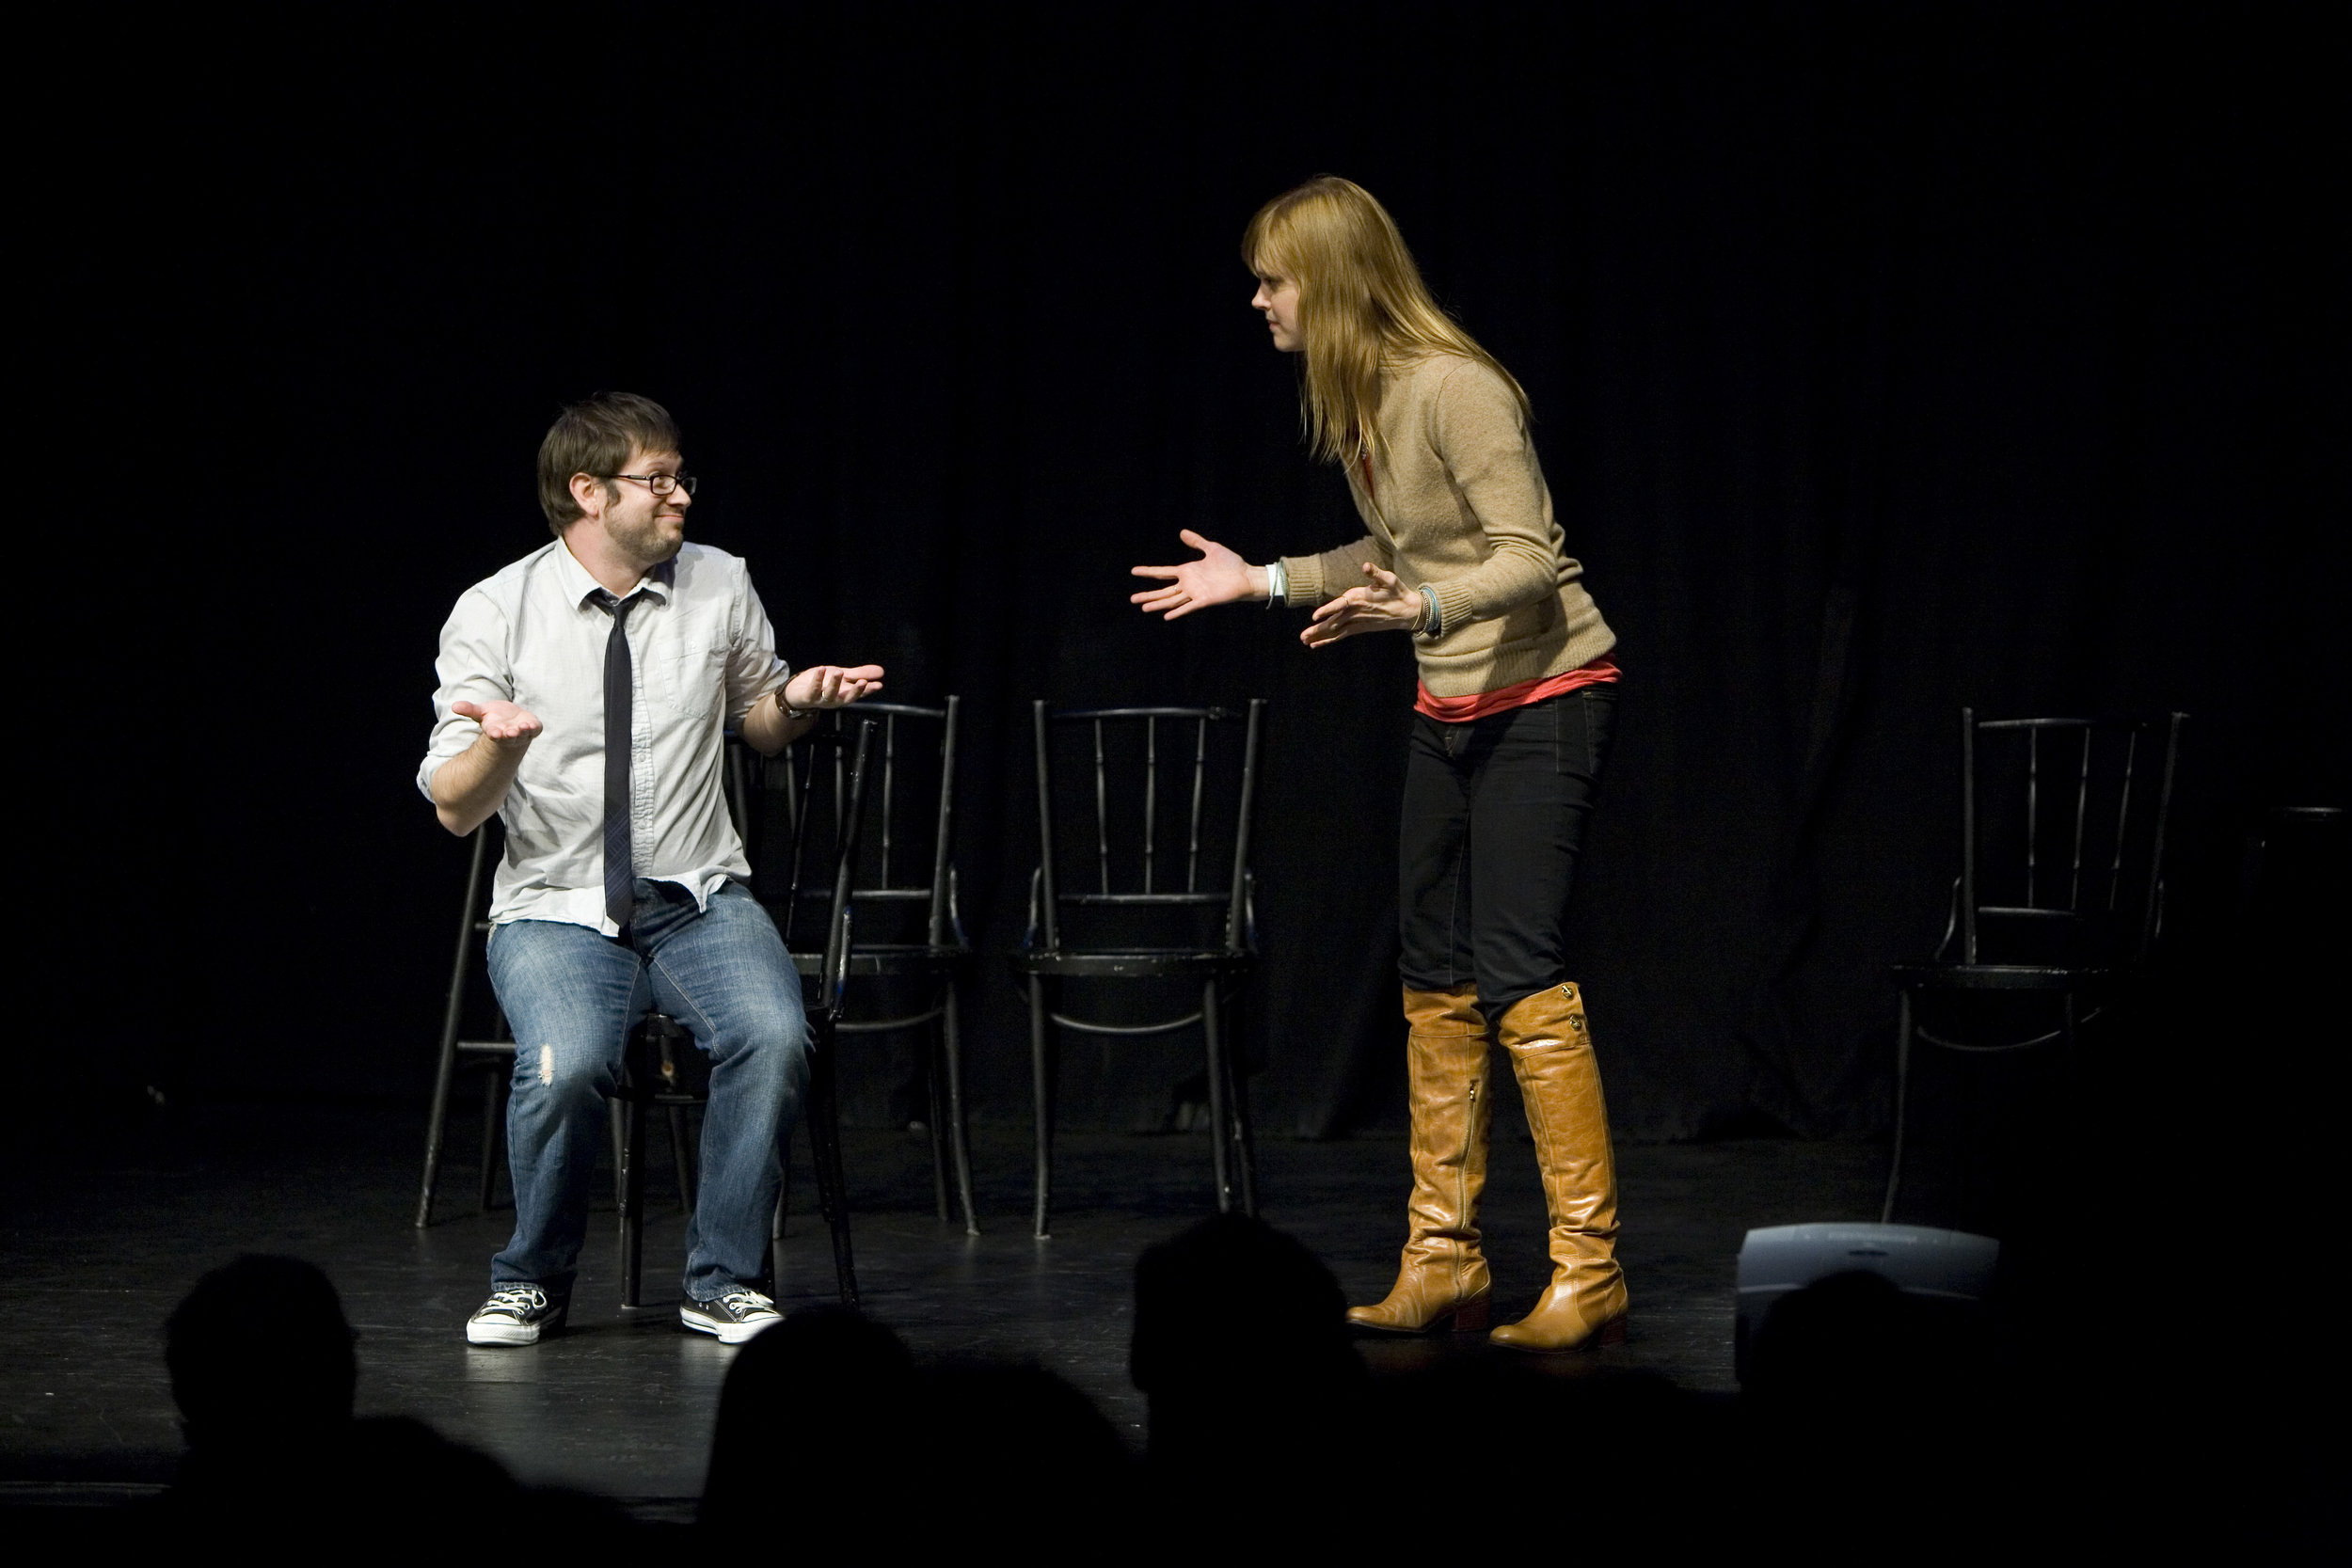 Cole Stratton and Janet Varney at Theme Park Improv at SF Sketchfest, January 23, 2011. Photo by Tommy Lau.